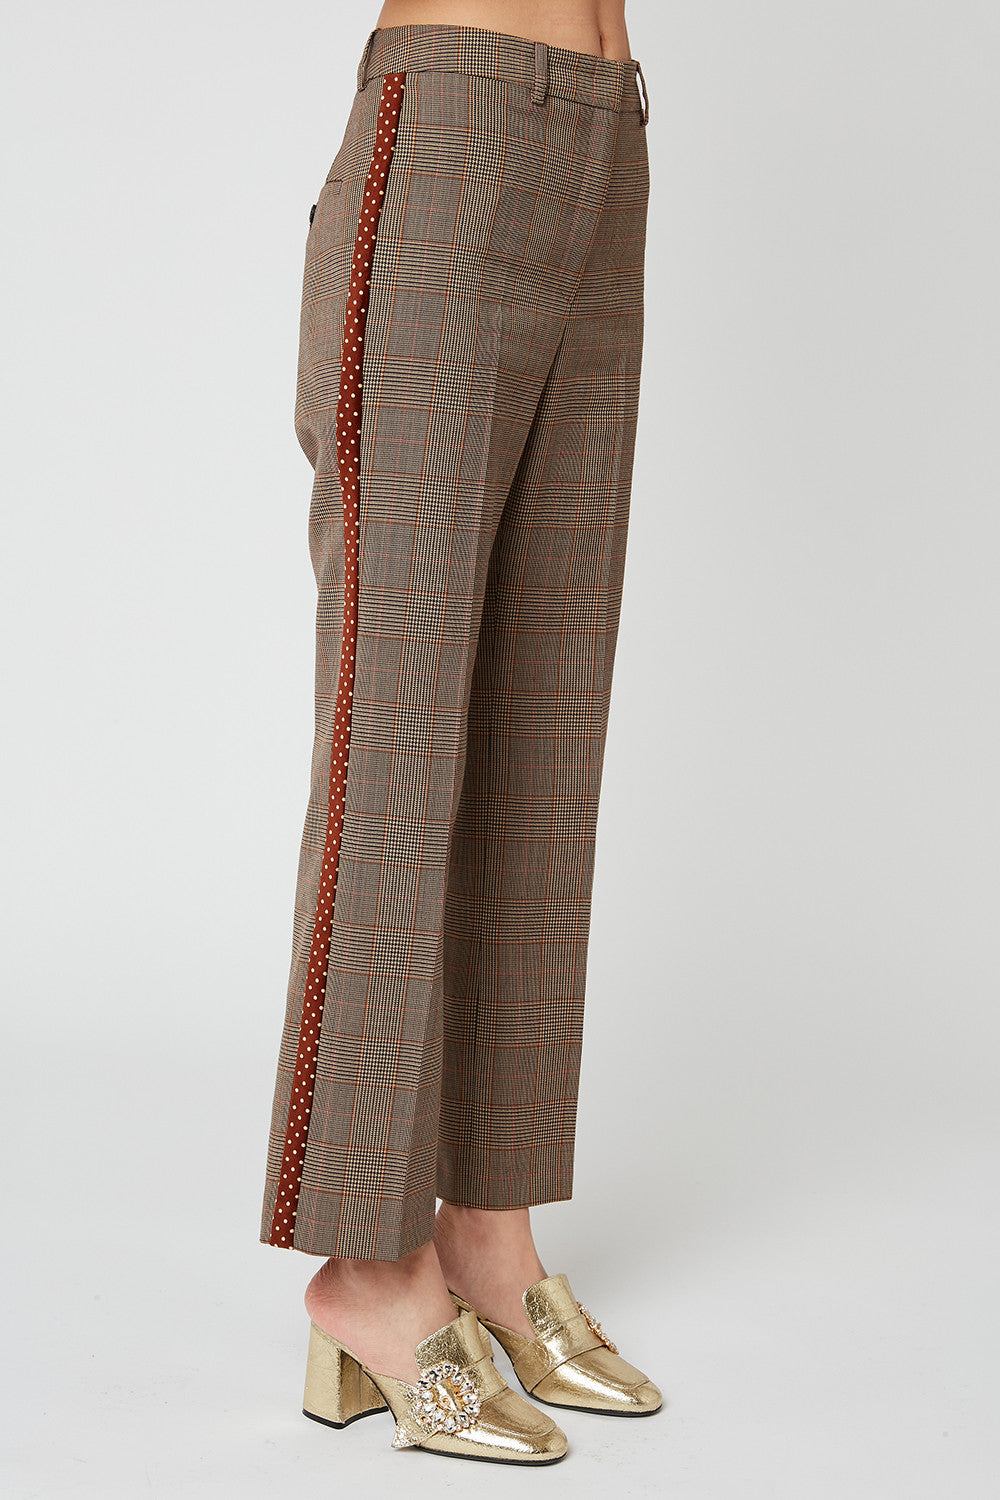 Prince of Wales flared trousers